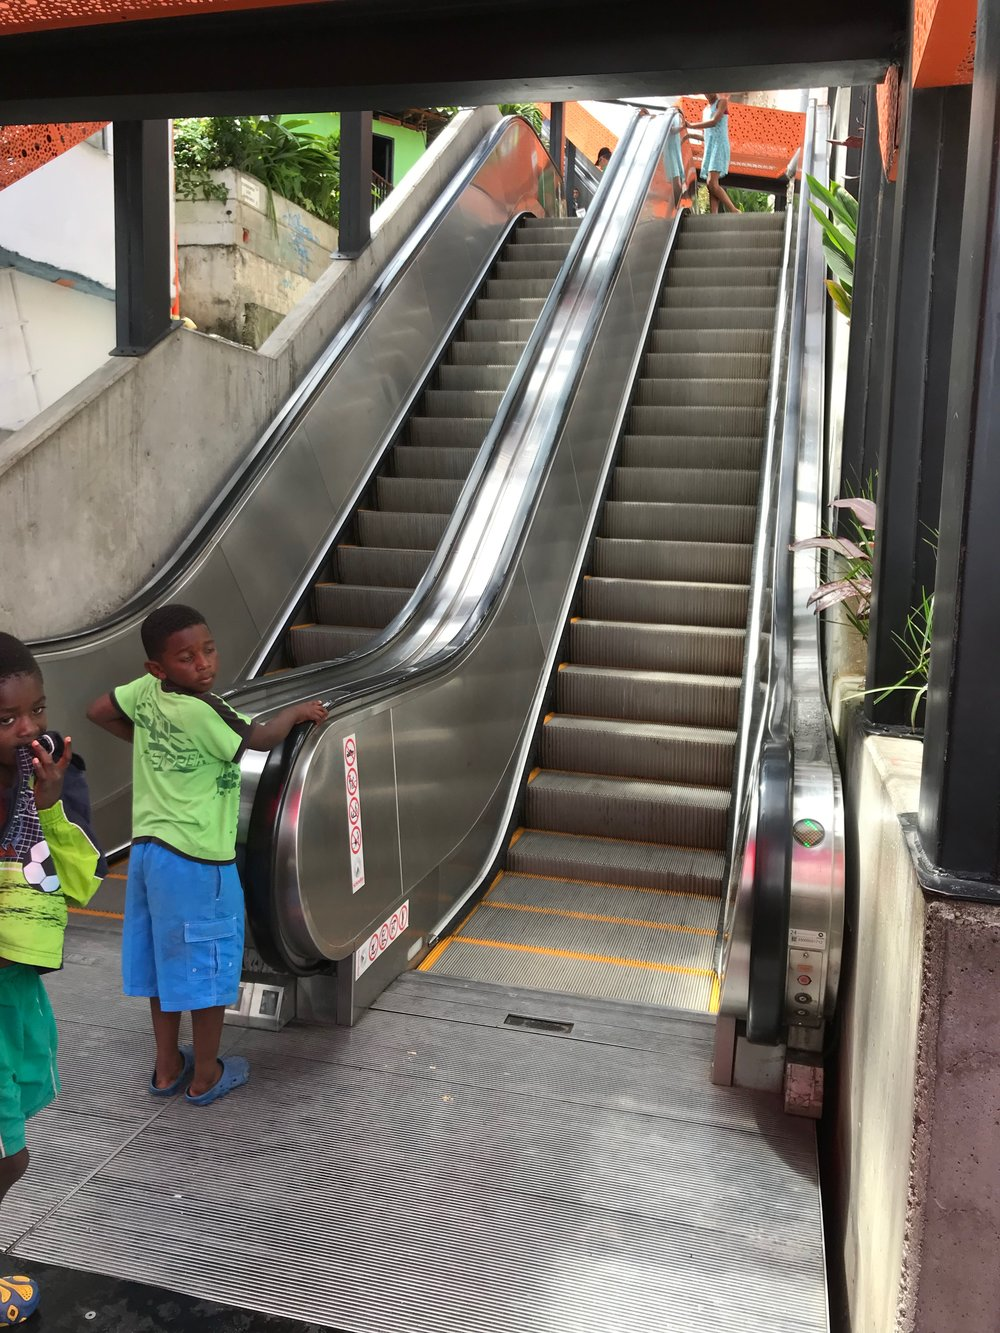 One of Comuna 13's many outdoor escalators